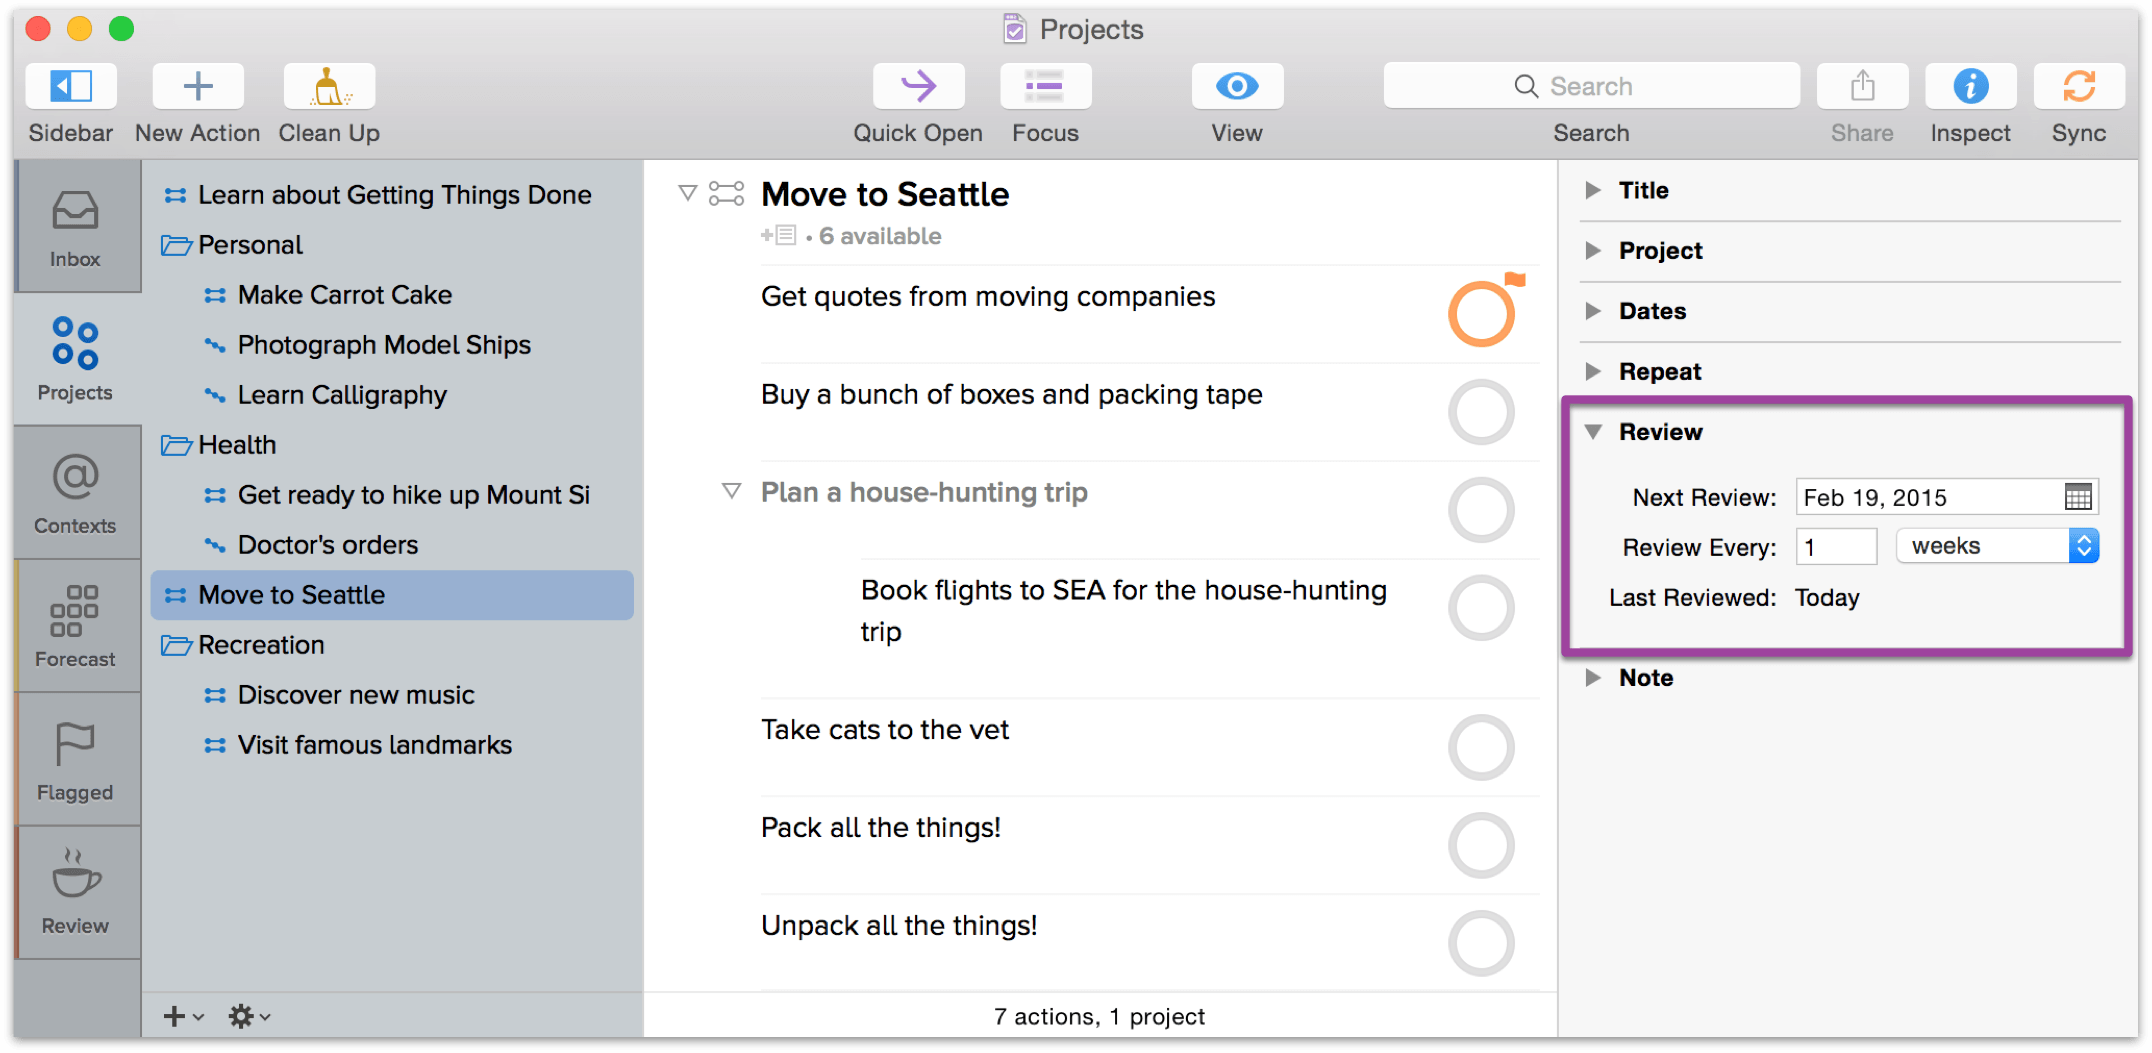 You can also use the Review inspector to adjust how frequently you plan to review your projects